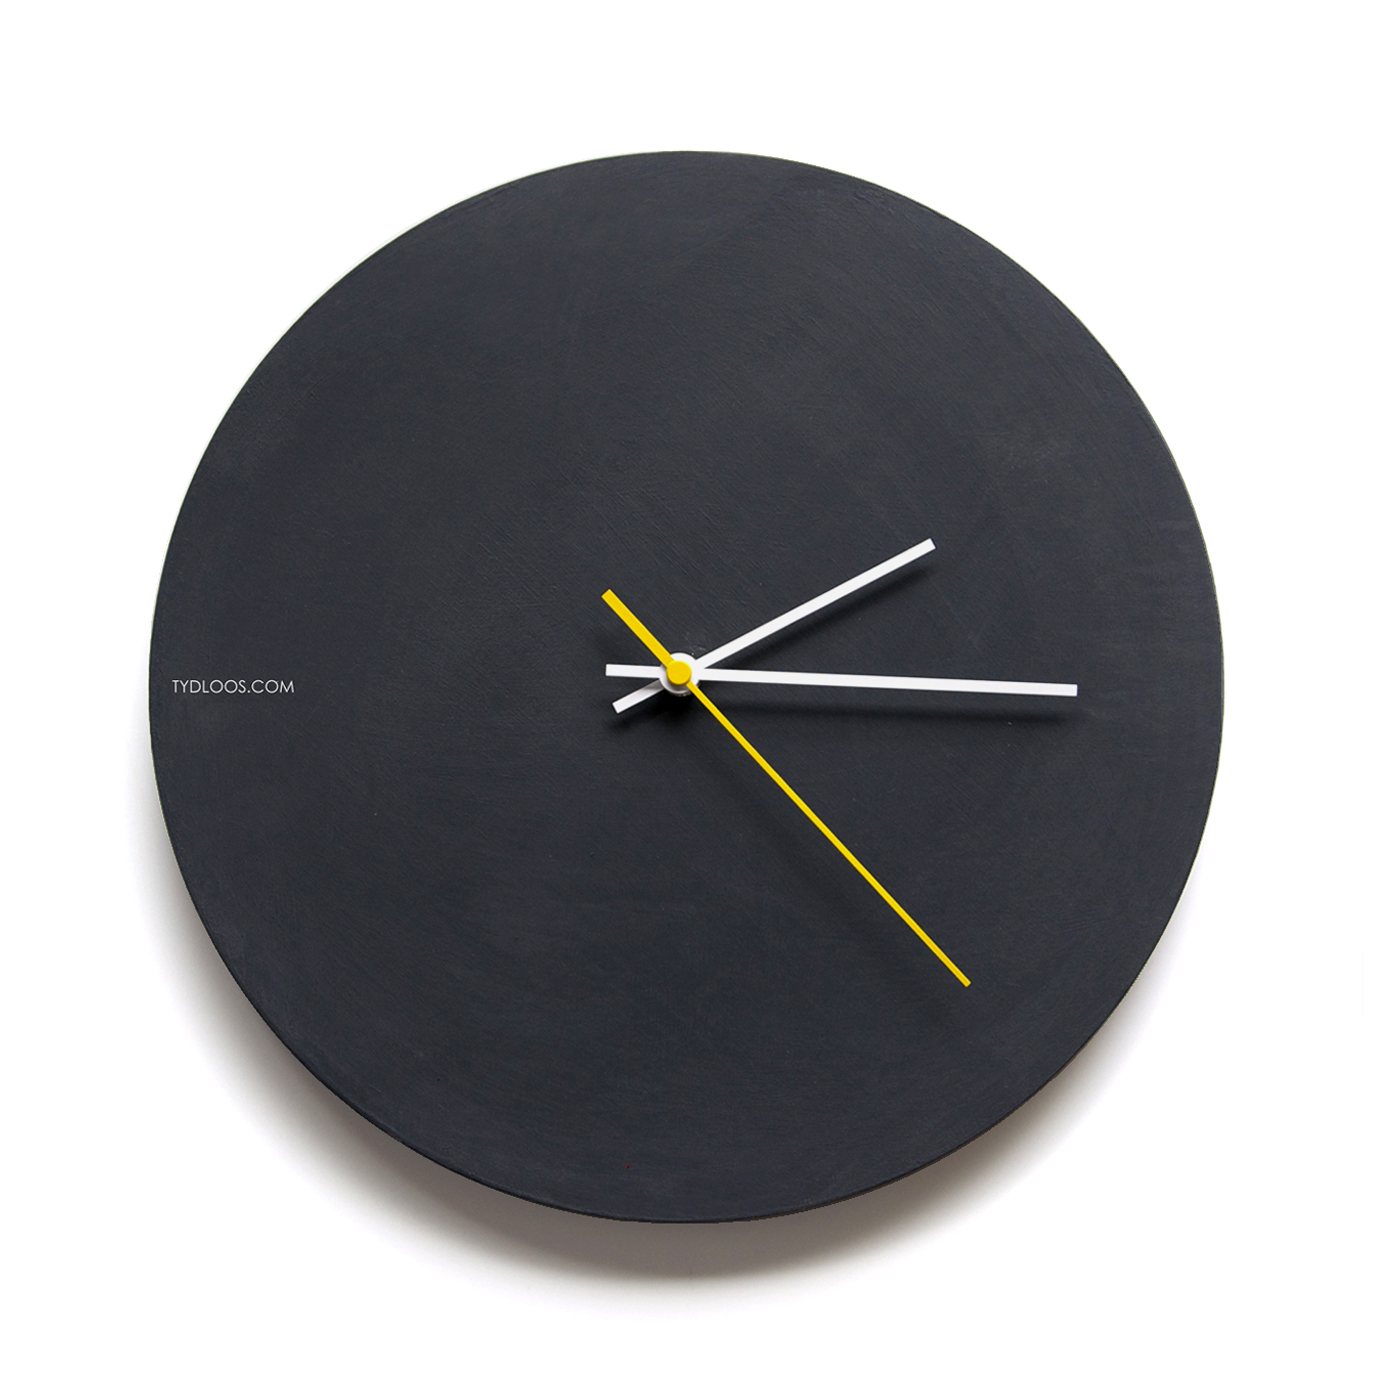 Black Modern Wall Clock Tydloos Com Online Shop